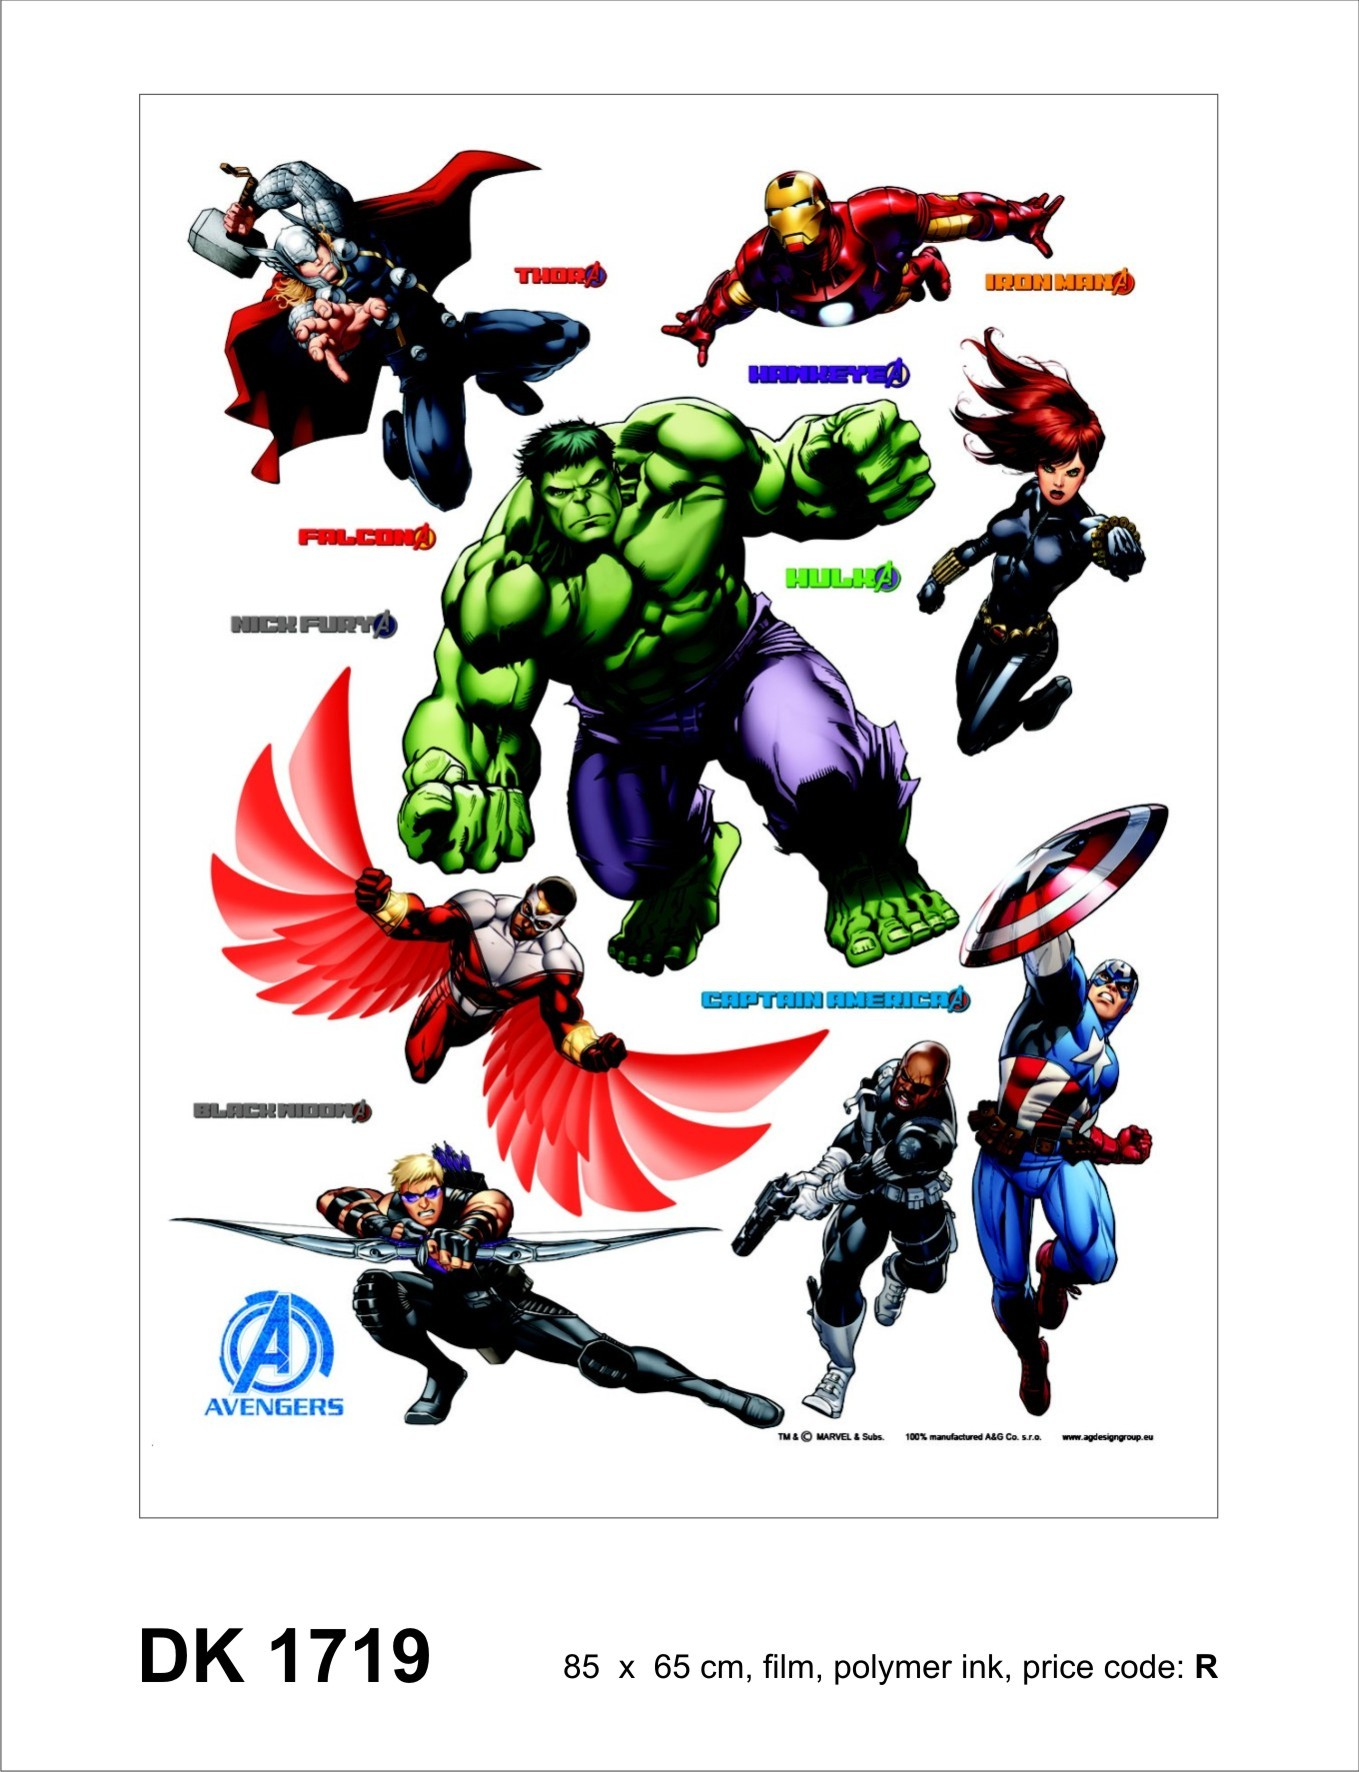 kinder wandsticker wandtattoo kinderdeko marvel the avengers. Black Bedroom Furniture Sets. Home Design Ideas